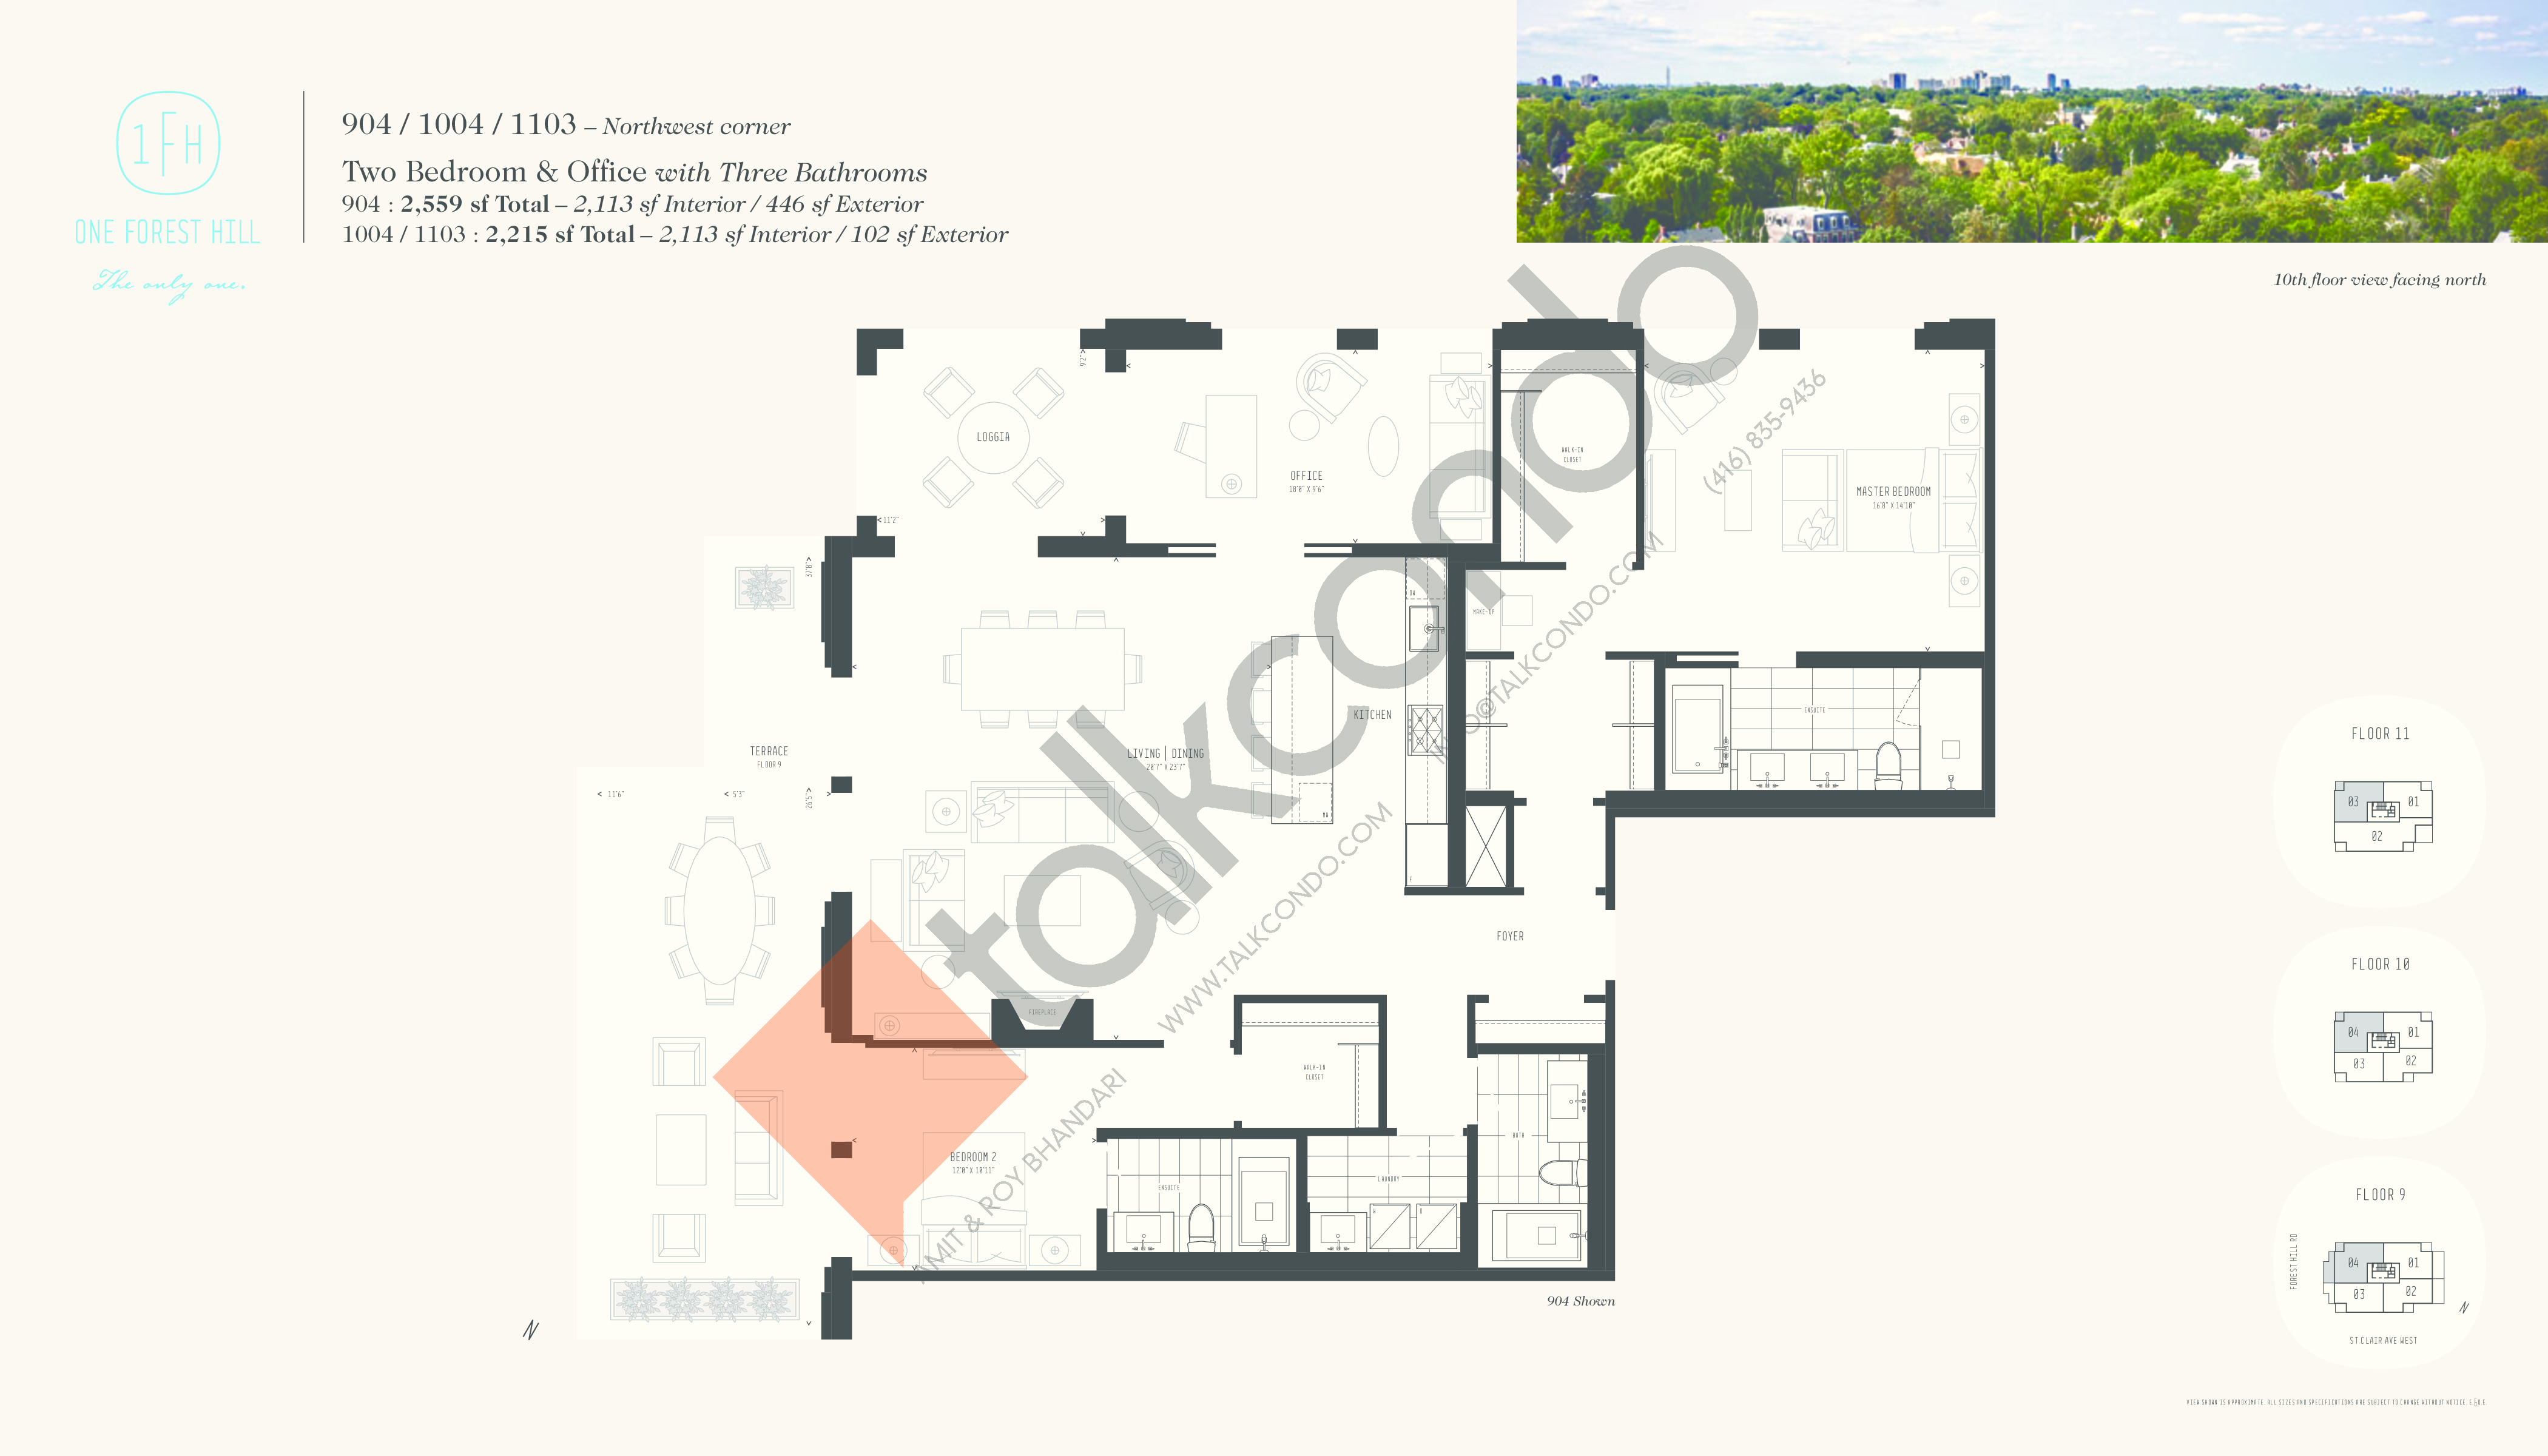 904 / 1004 / 1103 Floor Plan at One Forest Hill Condos - 2113 sq.ft